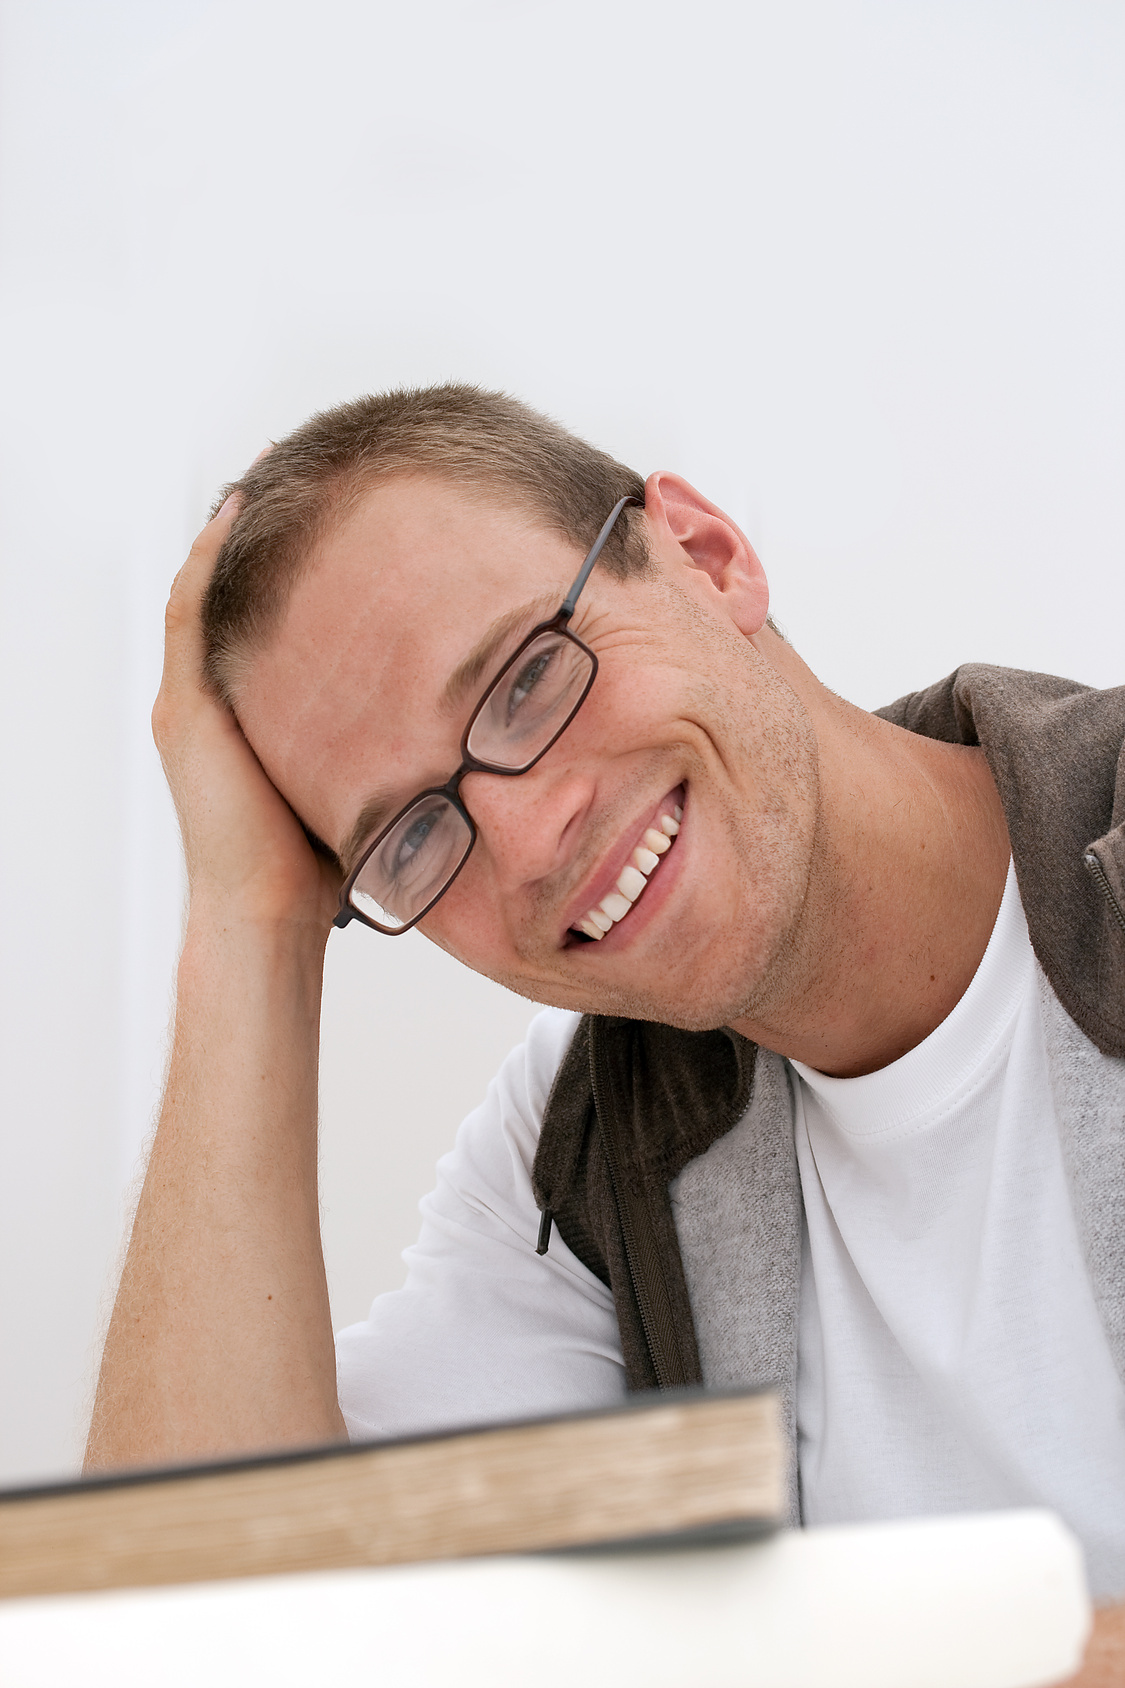 Smiling male student